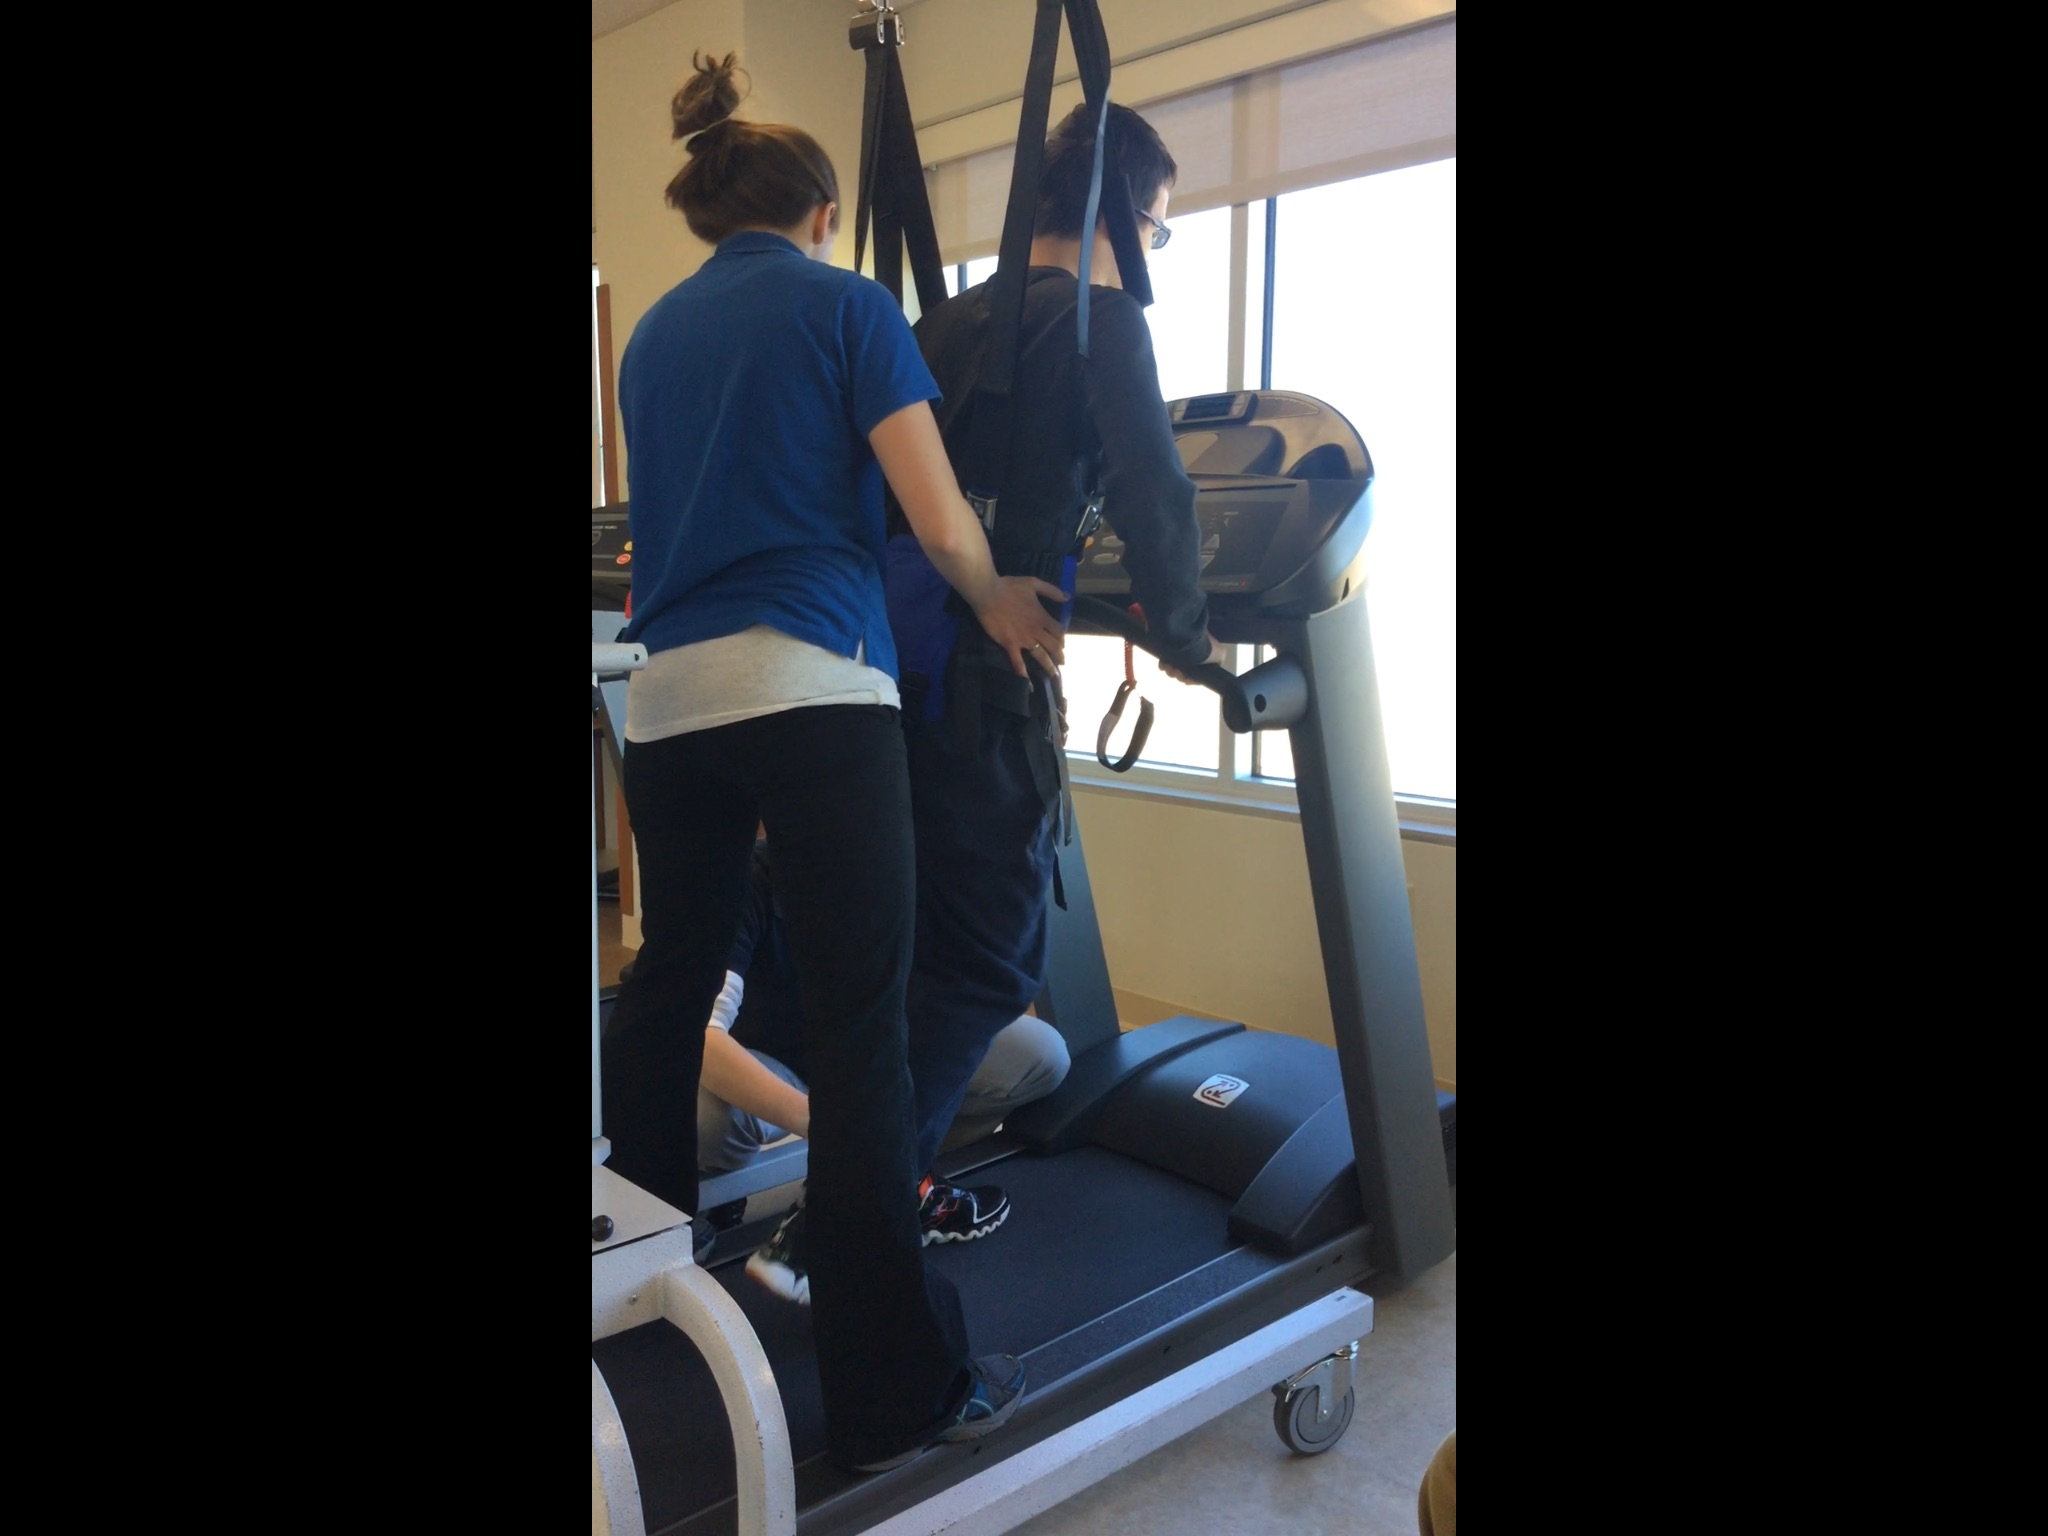 PT on the treadmill